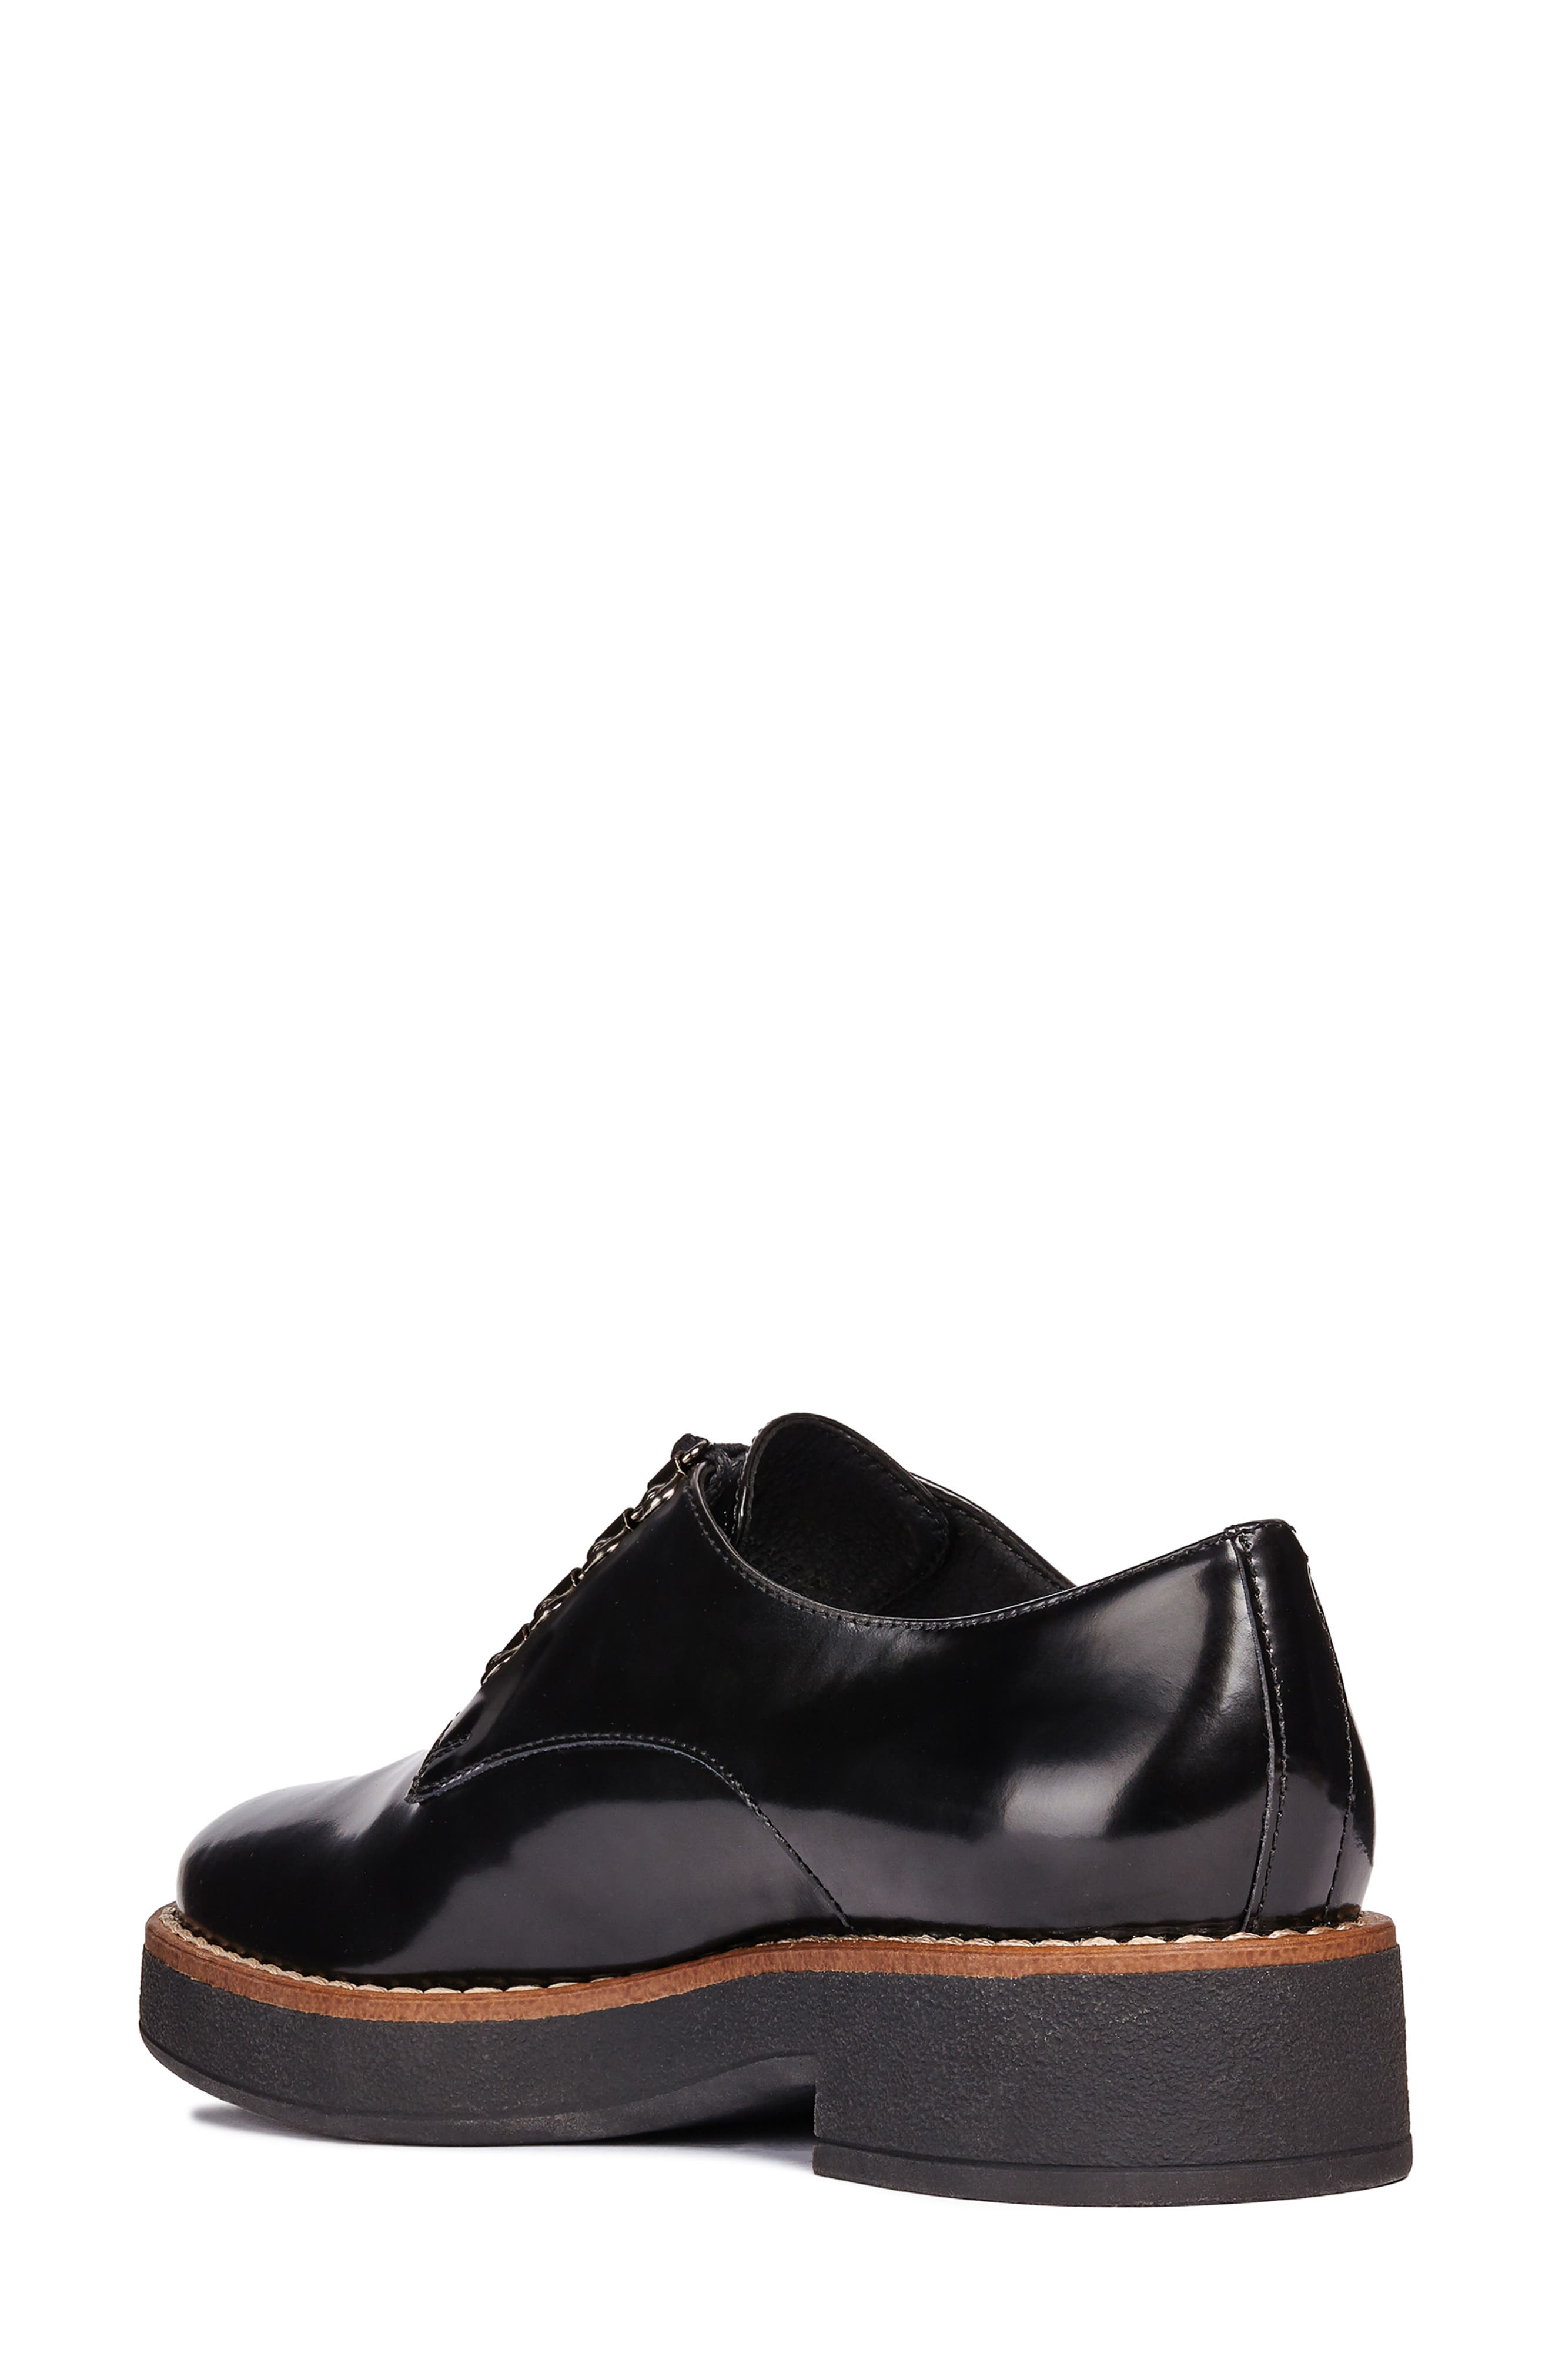 Adrya Oxford,                             Alternate thumbnail 2, color,                             BLACK/ BEIGE LEATHER